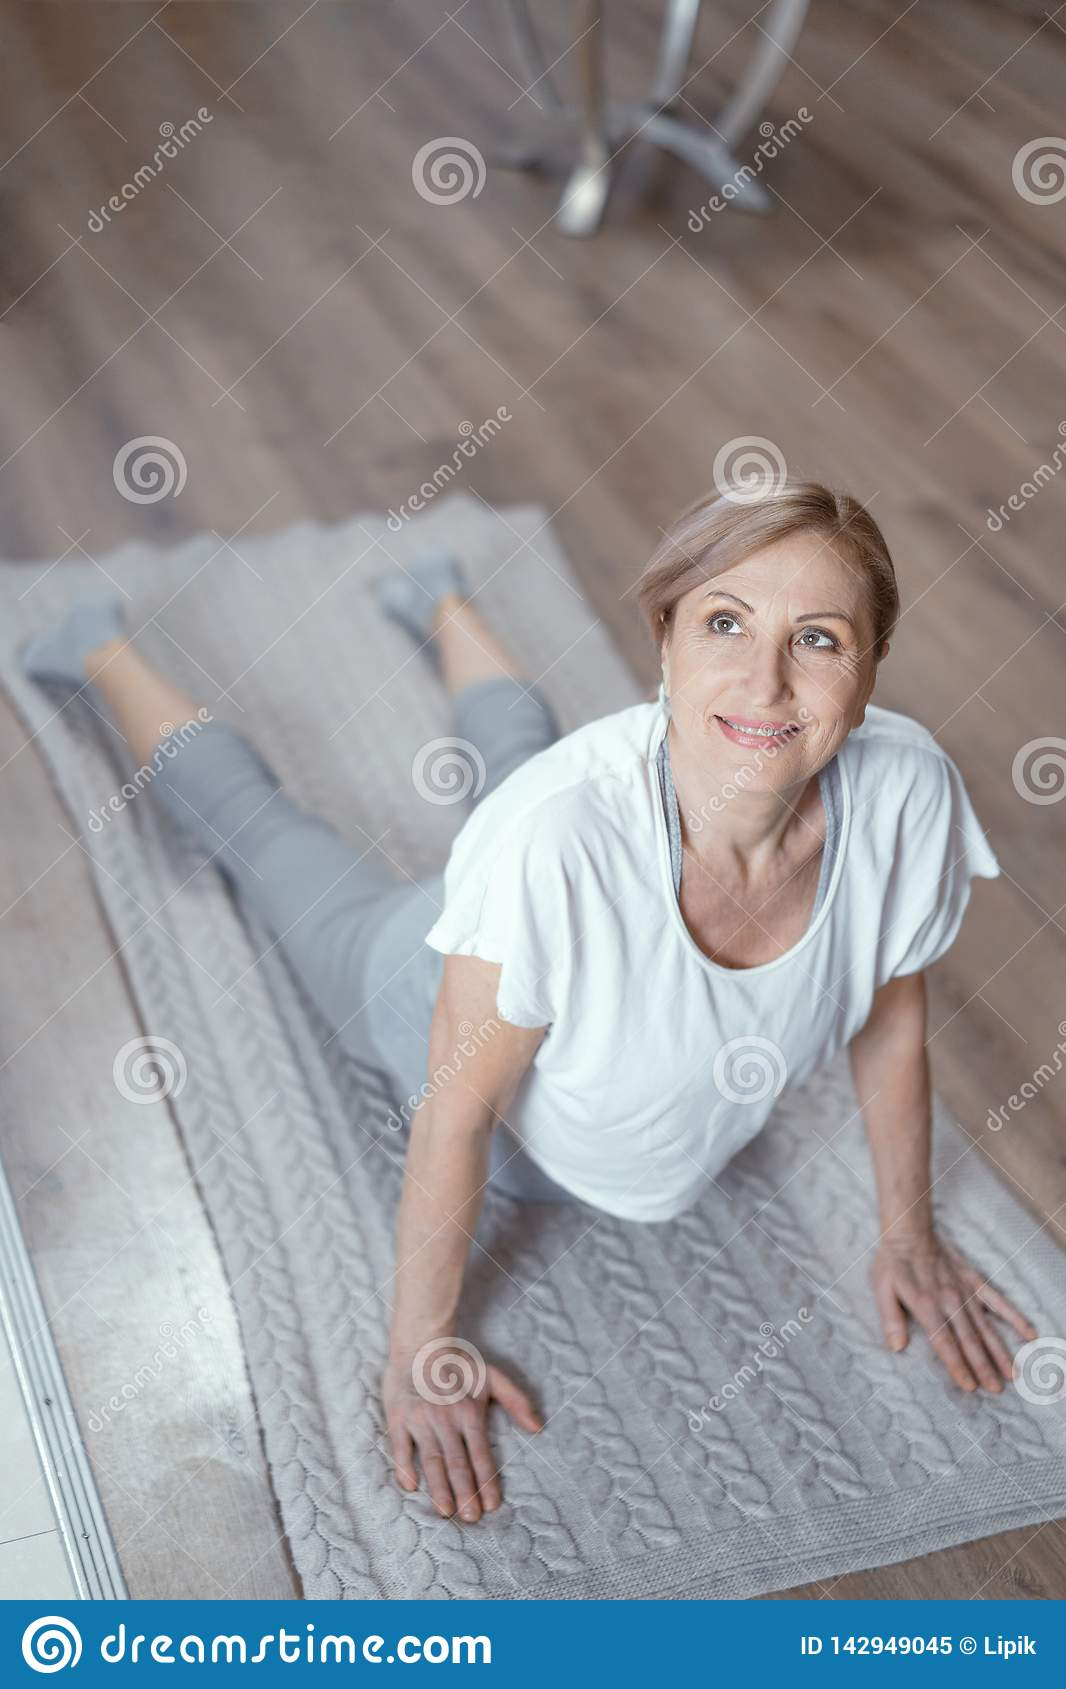 Yoga Classes At Home Beautiful Women Over 50 Years Stock Image Image Of Practice Interior 142949045